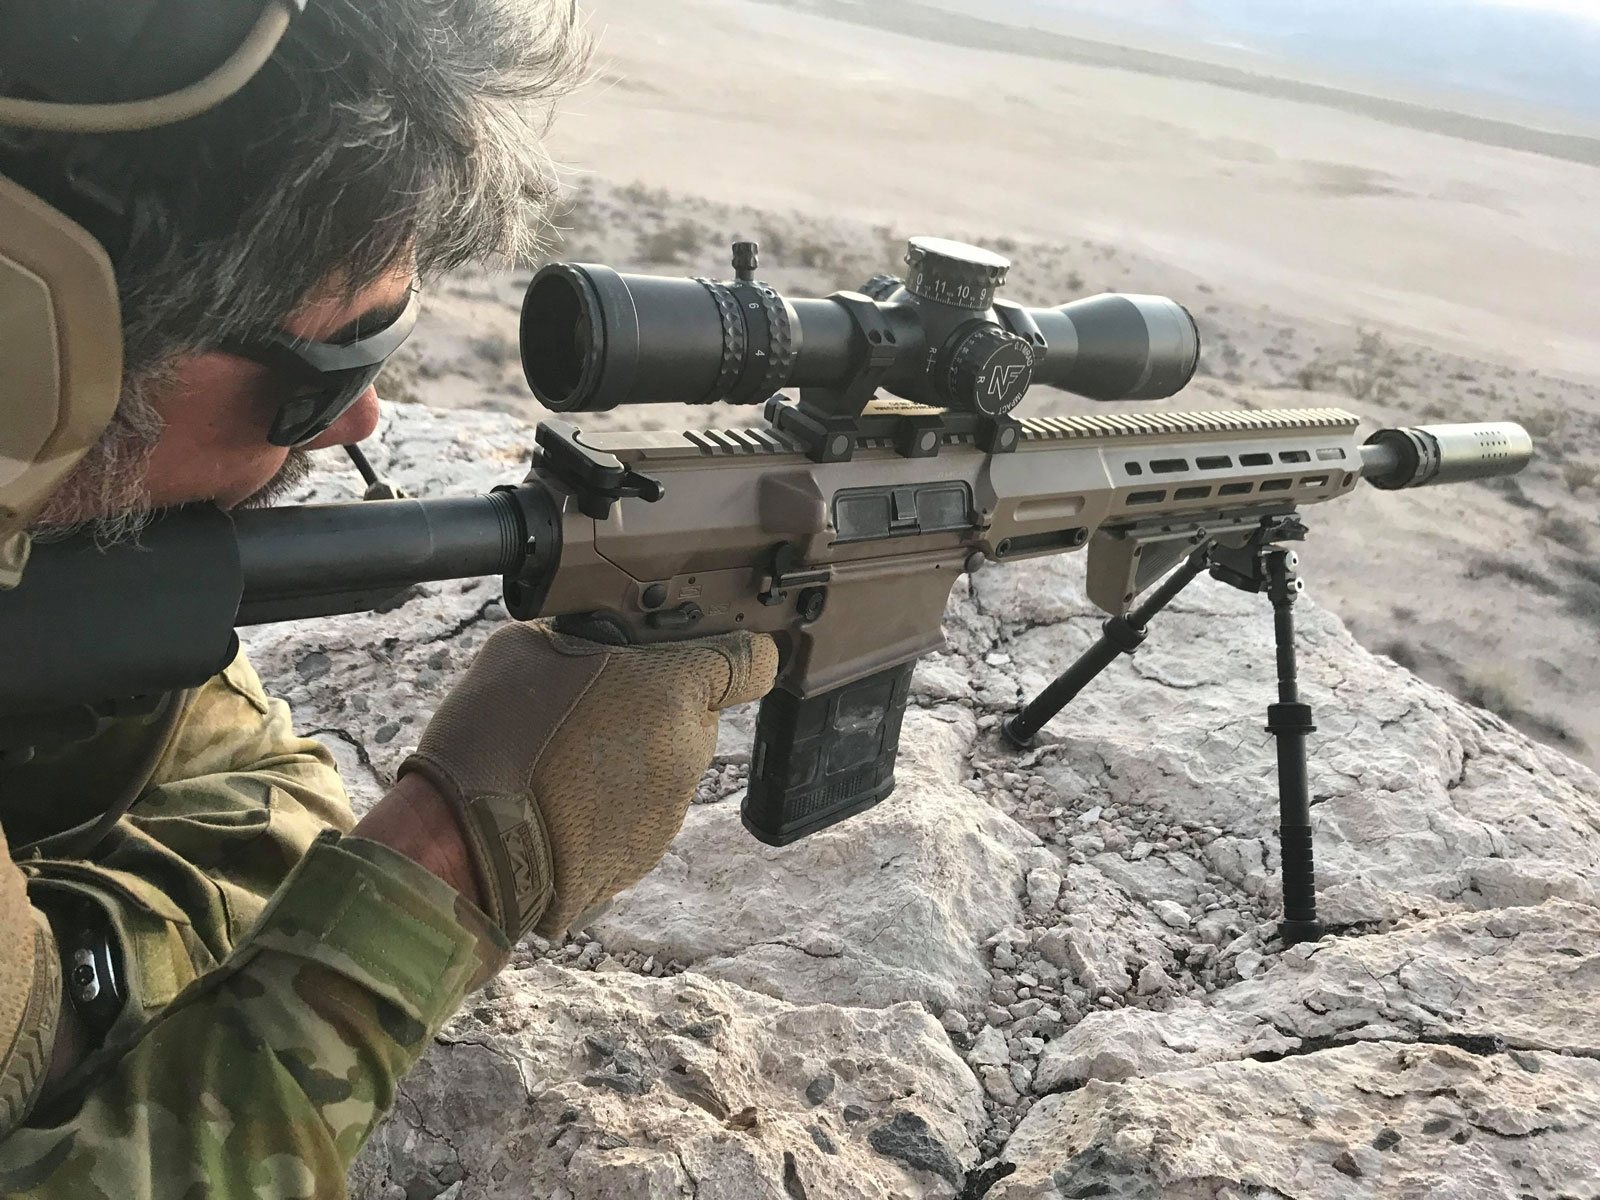 Captain (ret.) Reece Dewar OAM checks the sights on his rifle